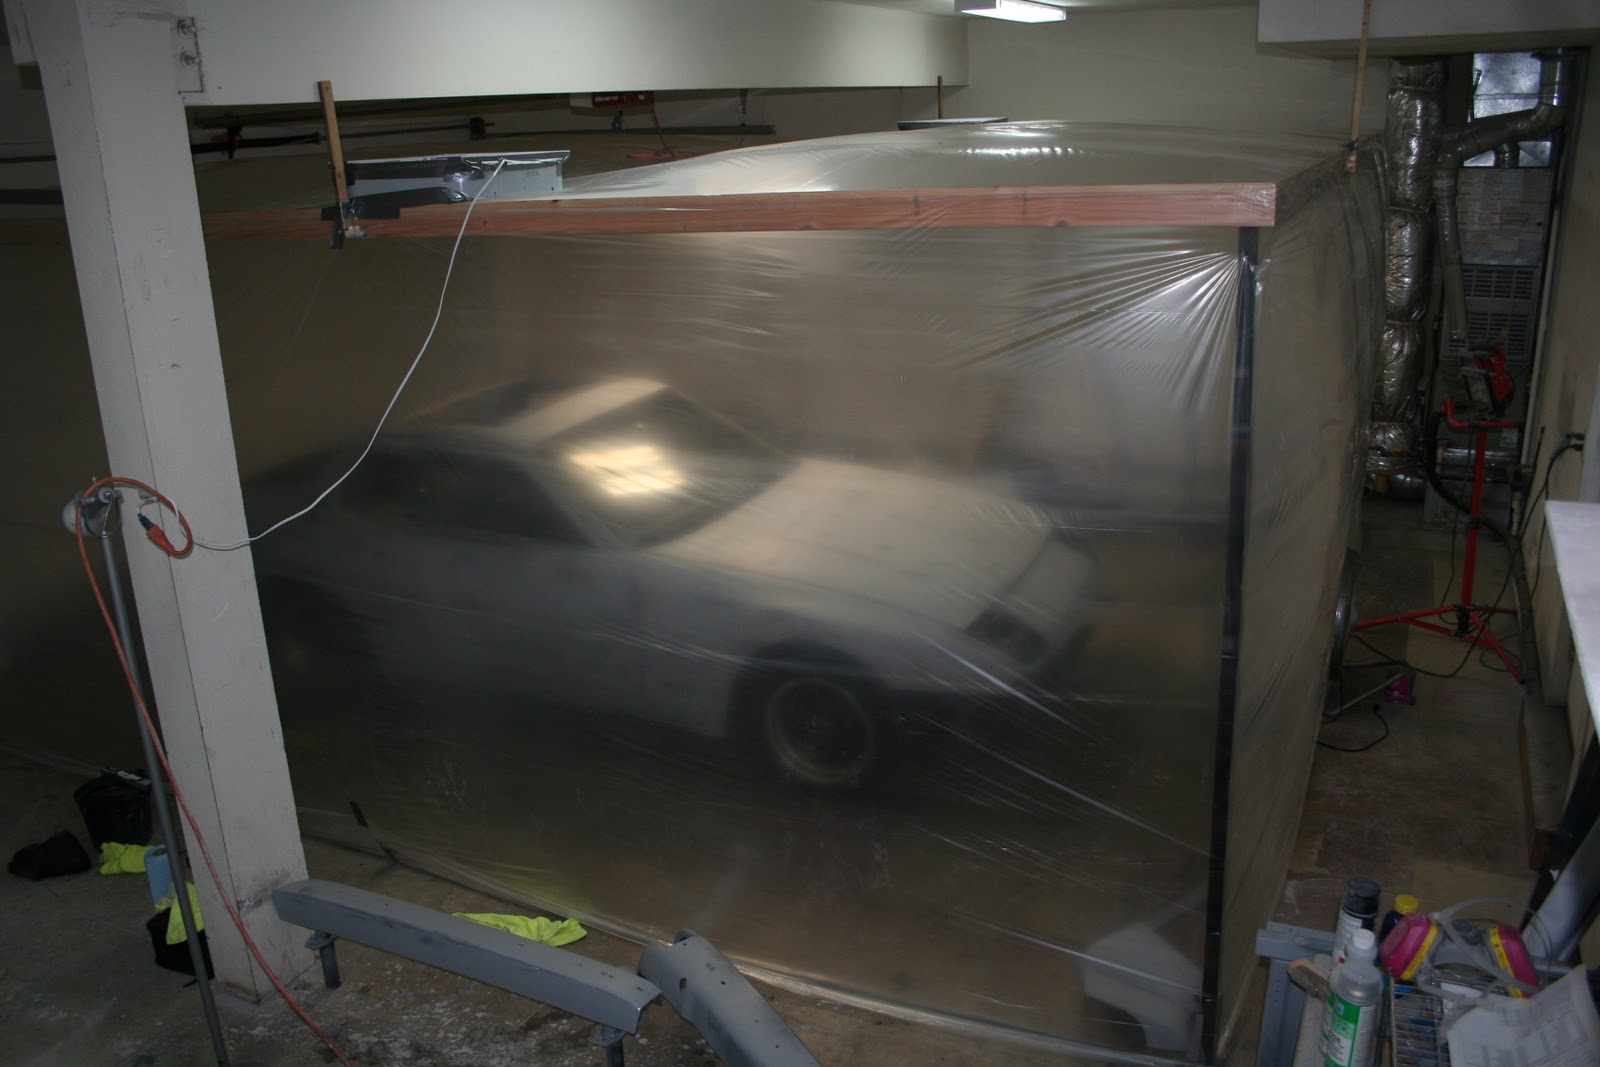 Repainting My 1983 Porsche 944: Building a DIY Spray-Booth in the